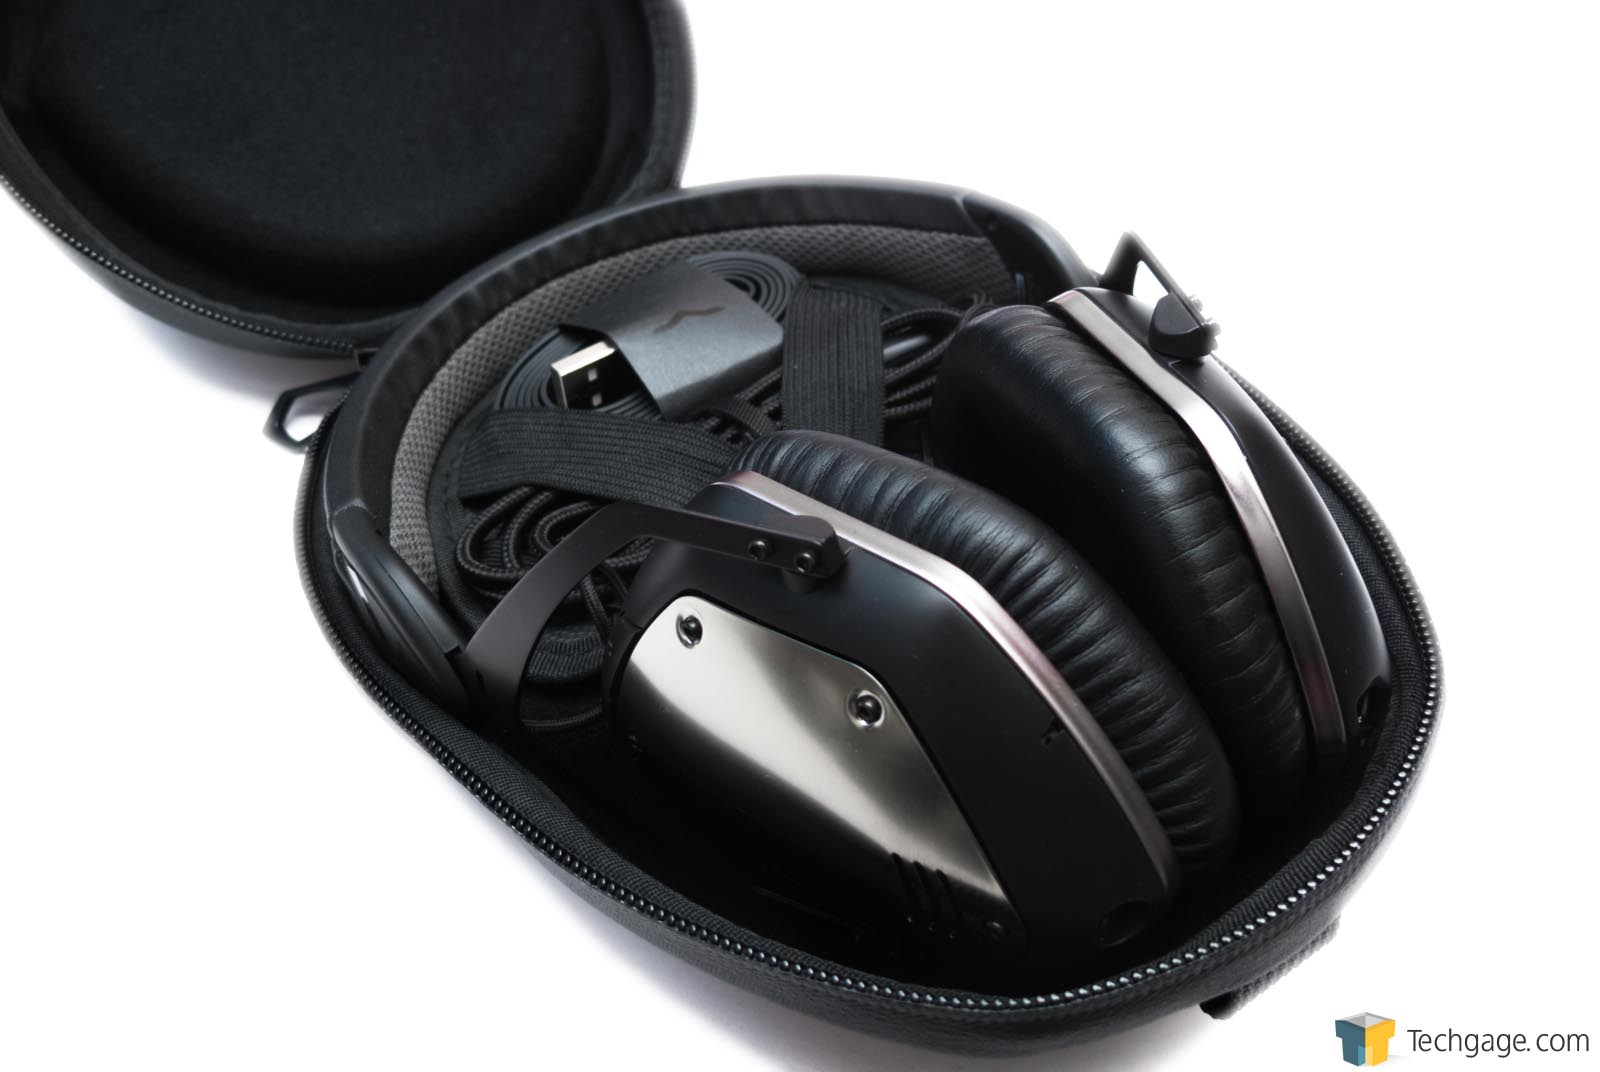 c71d2c07d6bb65 V-MODA Crossfade Wireless Headset Review: Bringing 3D Printed  Personalization To High-End Audio – Techgage